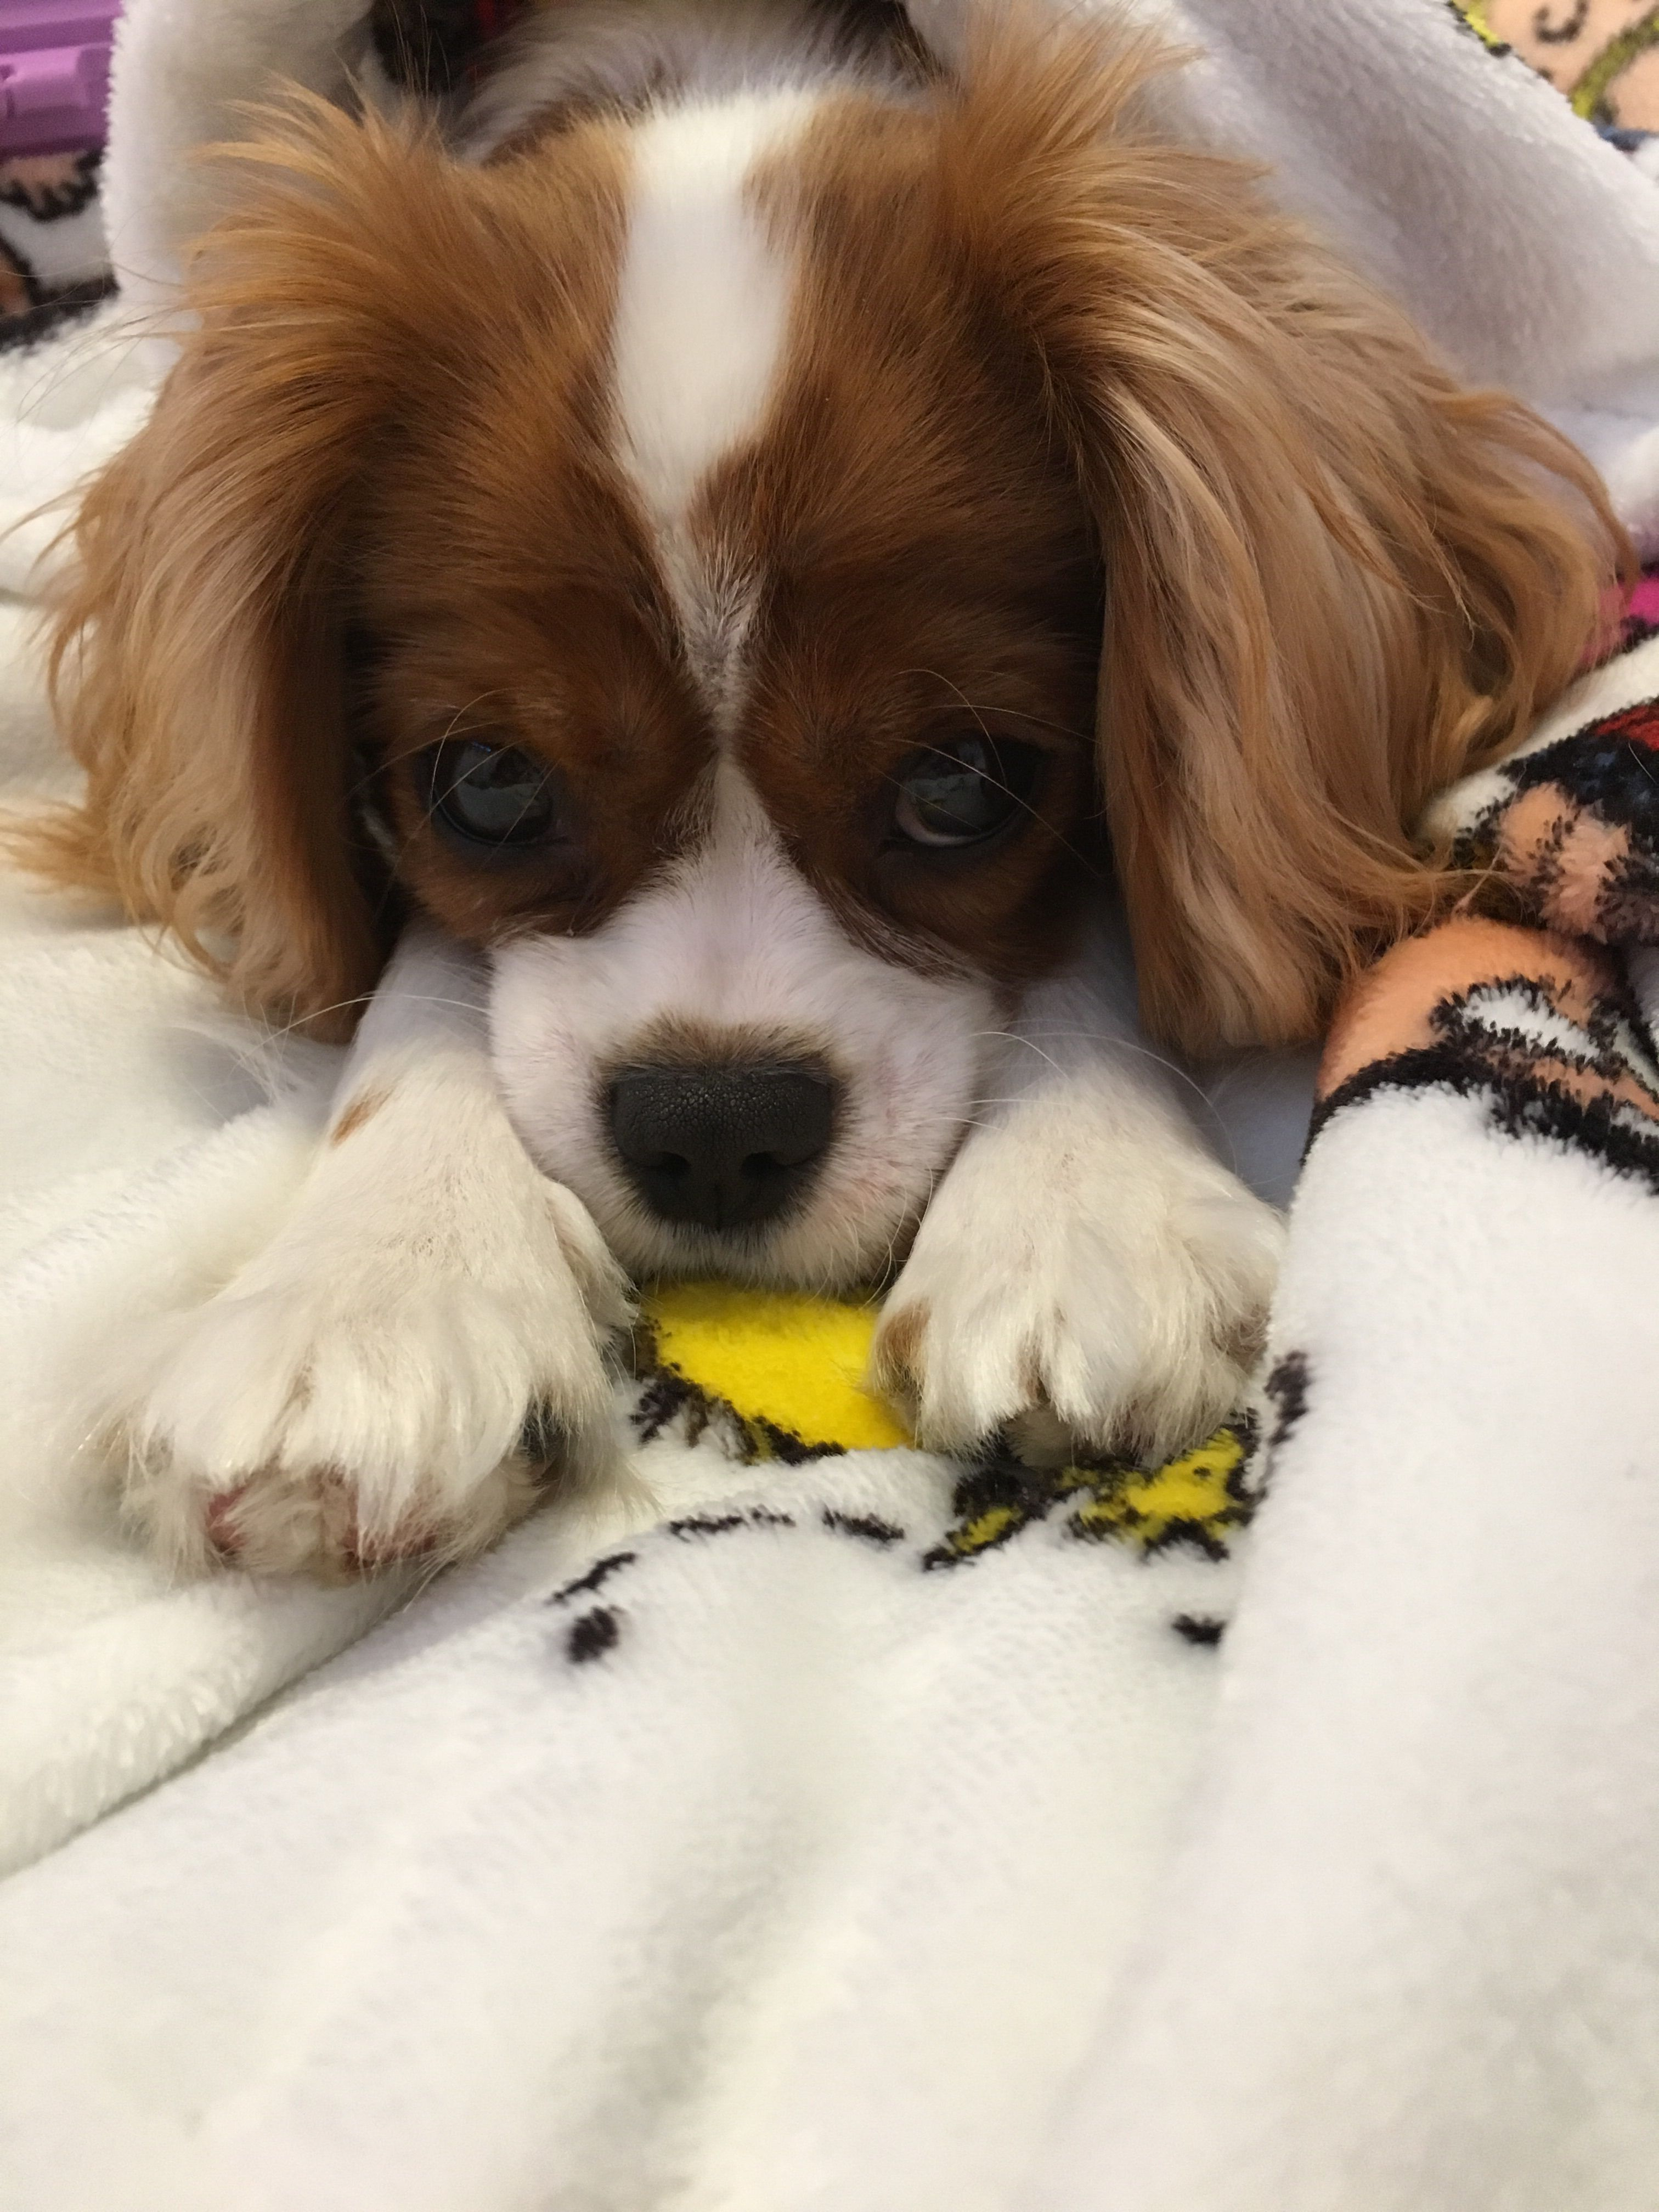 Pin by Emma May on Bella Cavalier king charles, King